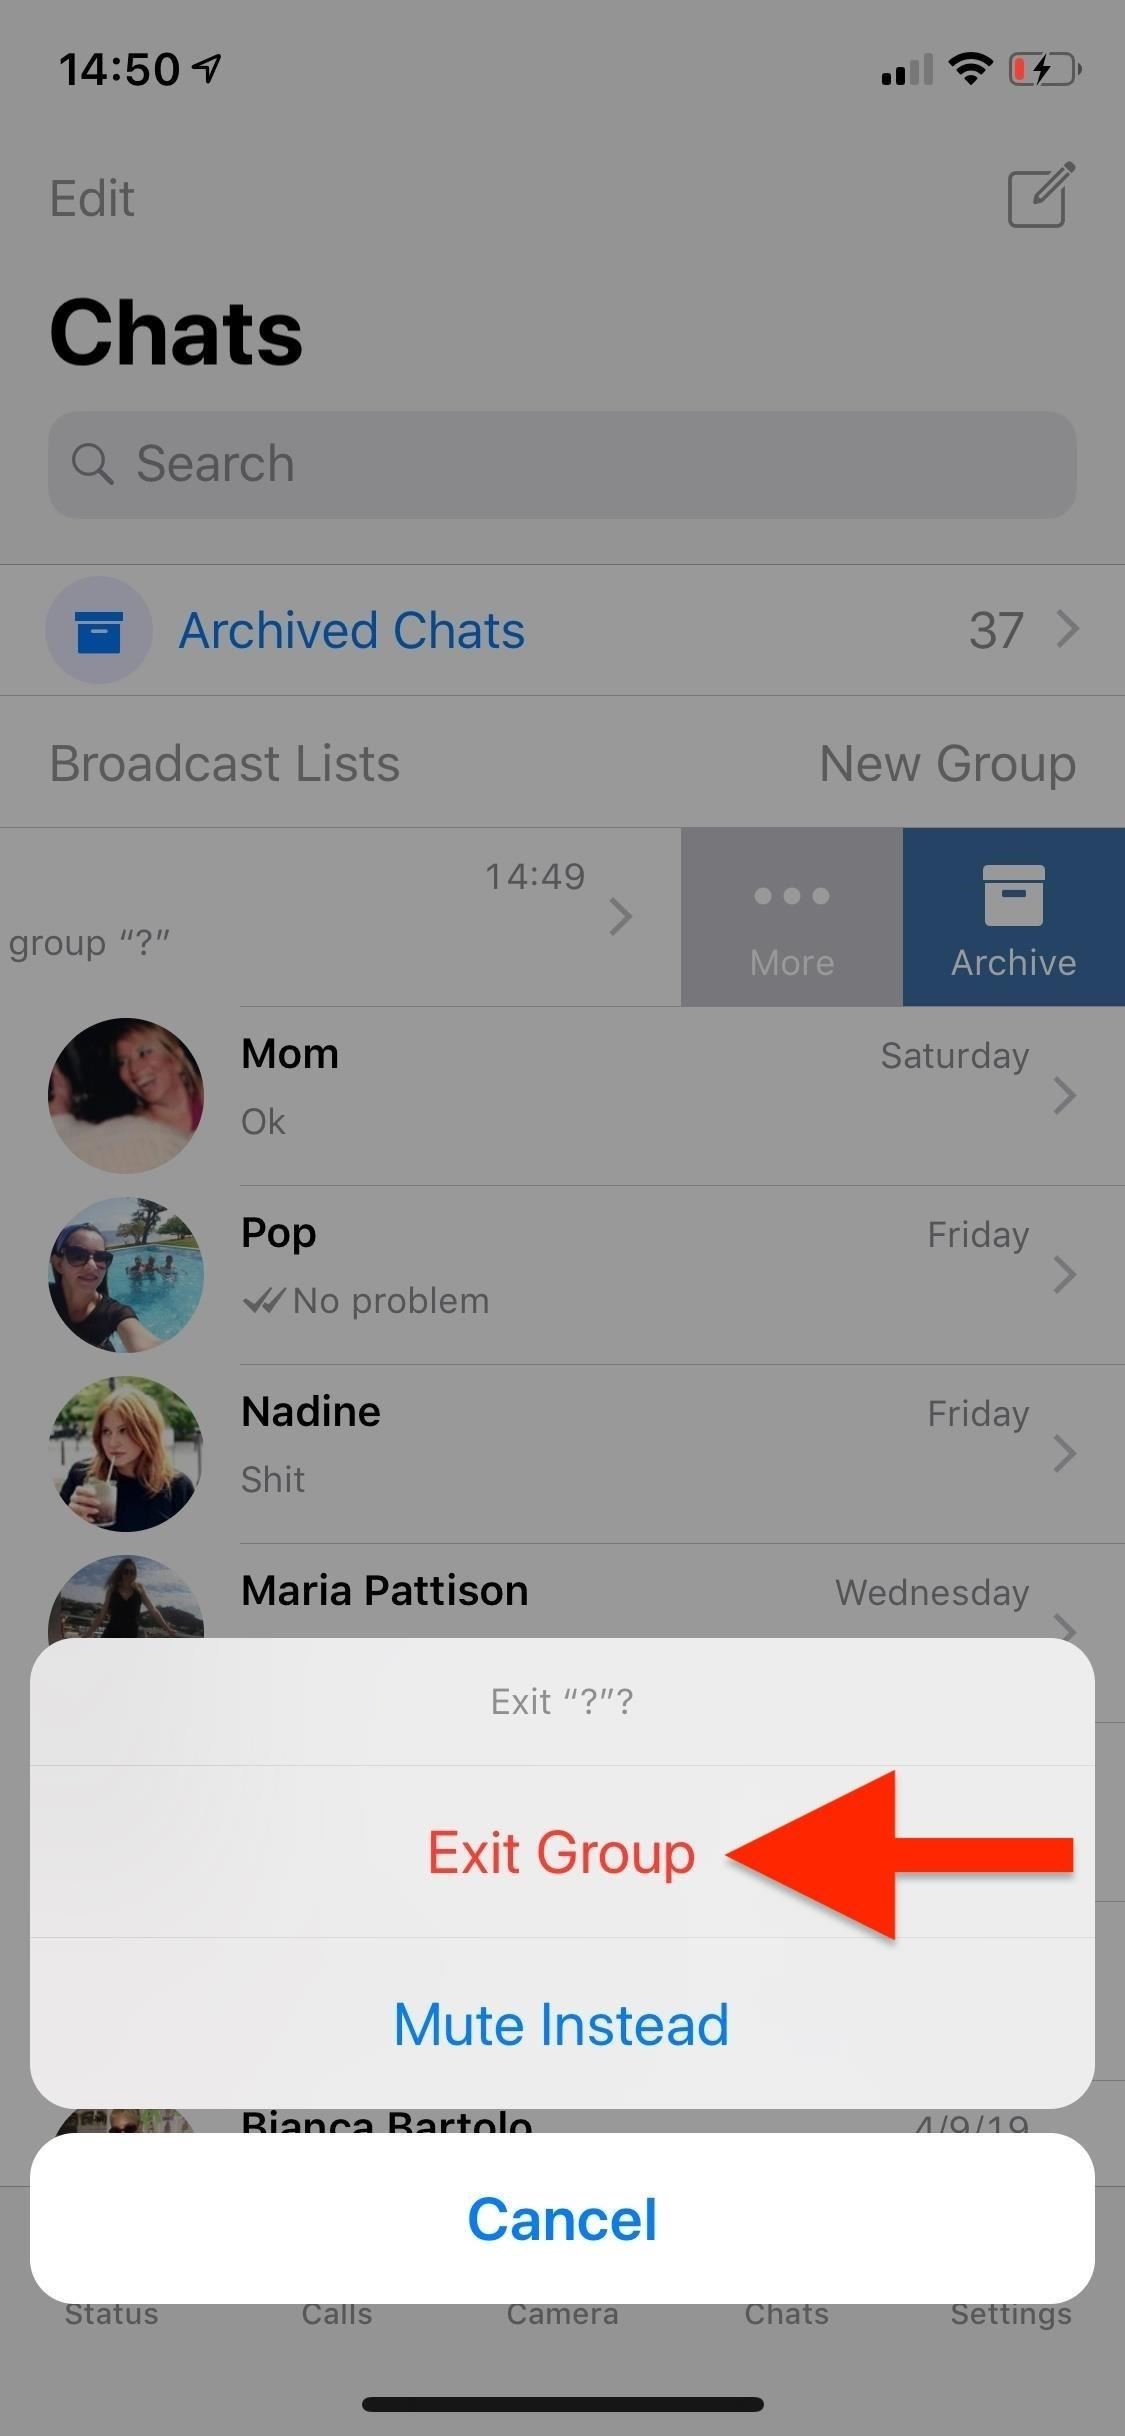 How to Mute or Leave Group Chats in WhatsApp, So You Never Get Annoyed by Notifications